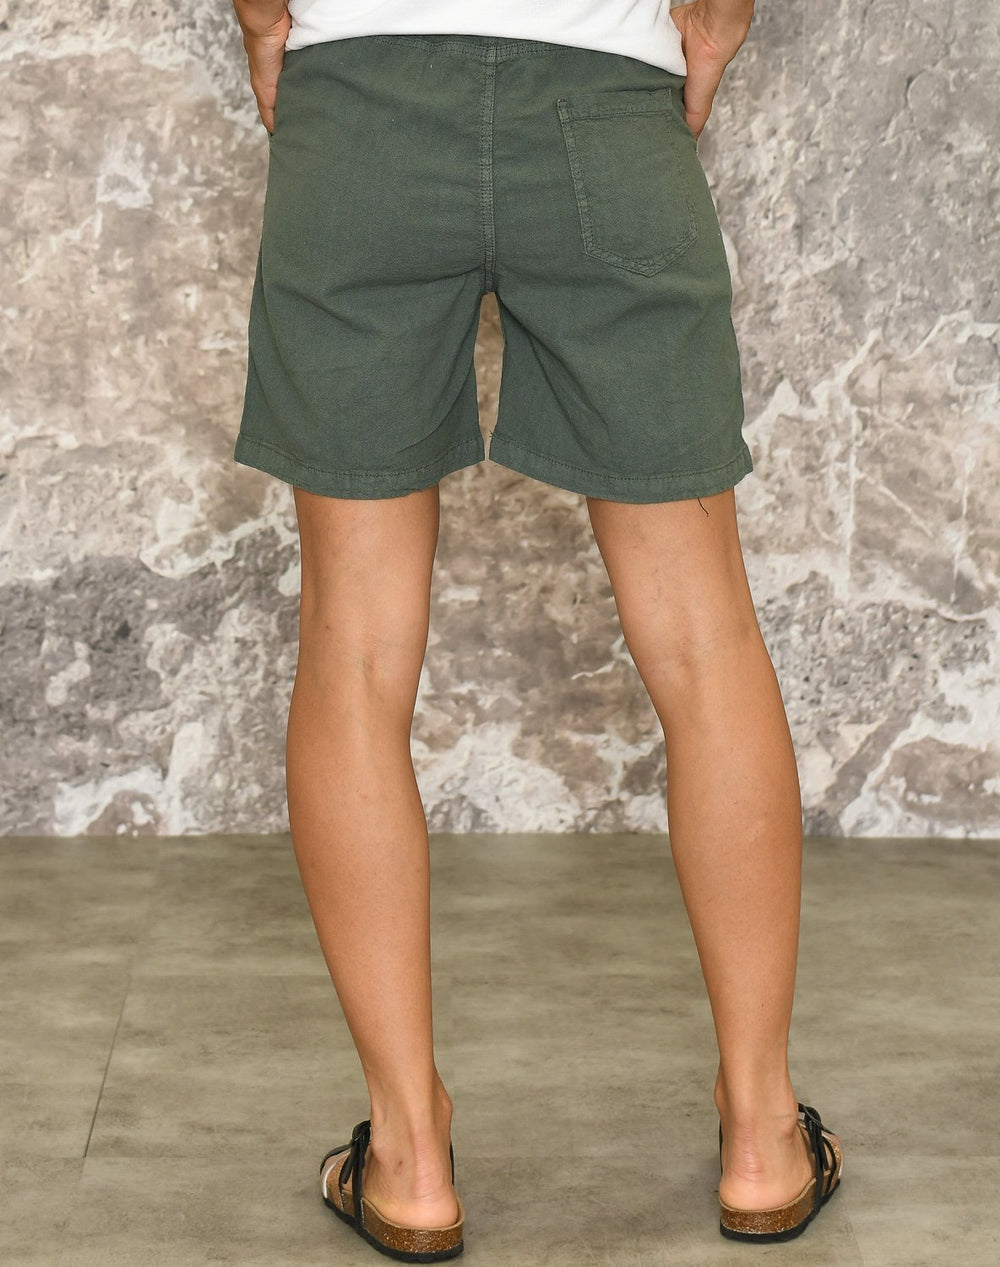 Ofelia Sitta shorts light olive - Online-Mode